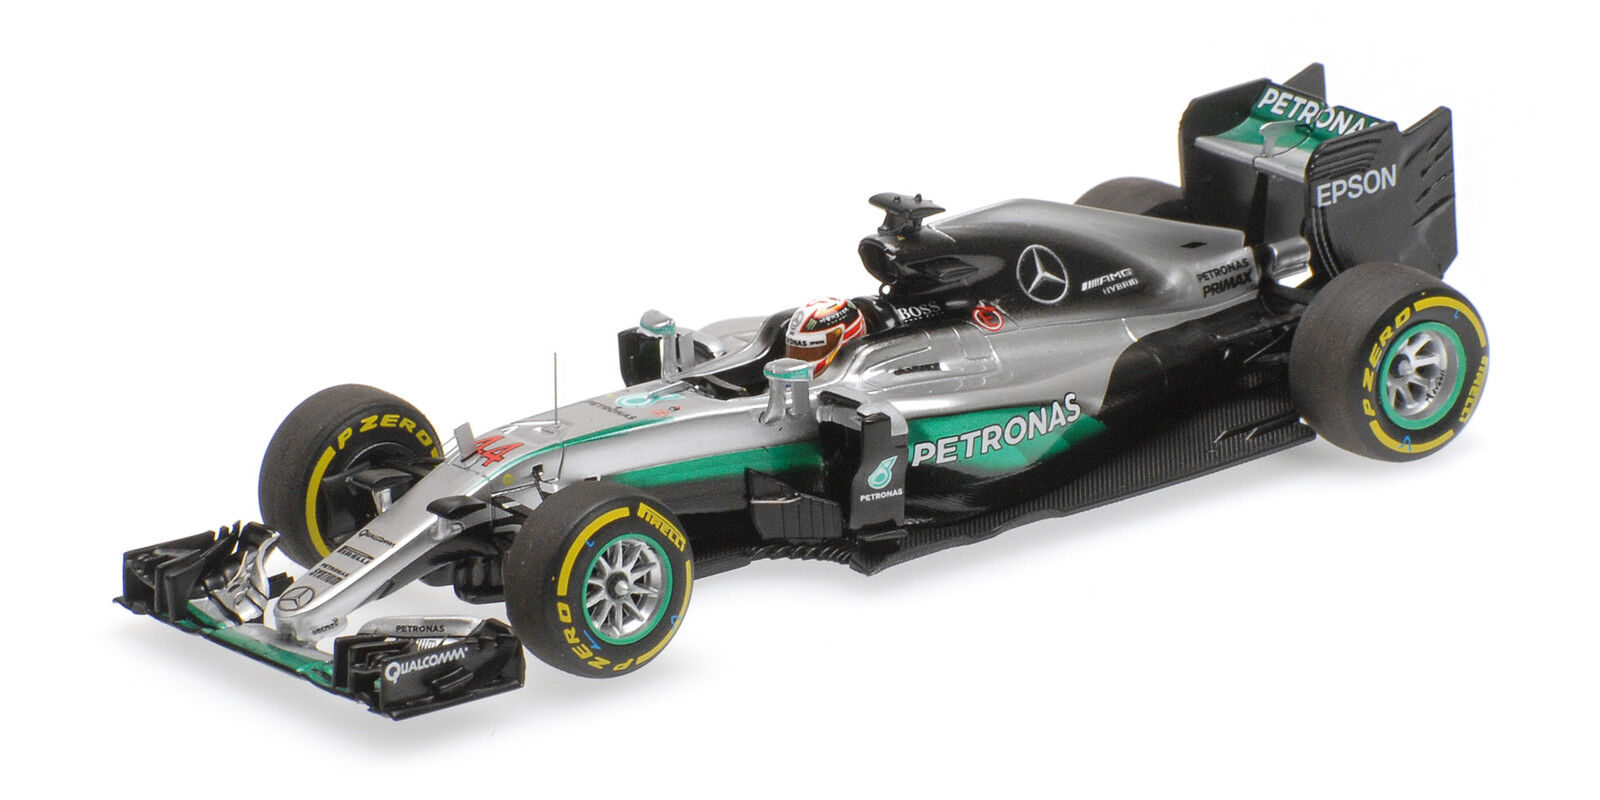 Mercedes Amg W07 Lewis Hamilton Winner Abu  Dhabi Gp 2016 1 43 Model MINICHAMPS  authentique en ligne